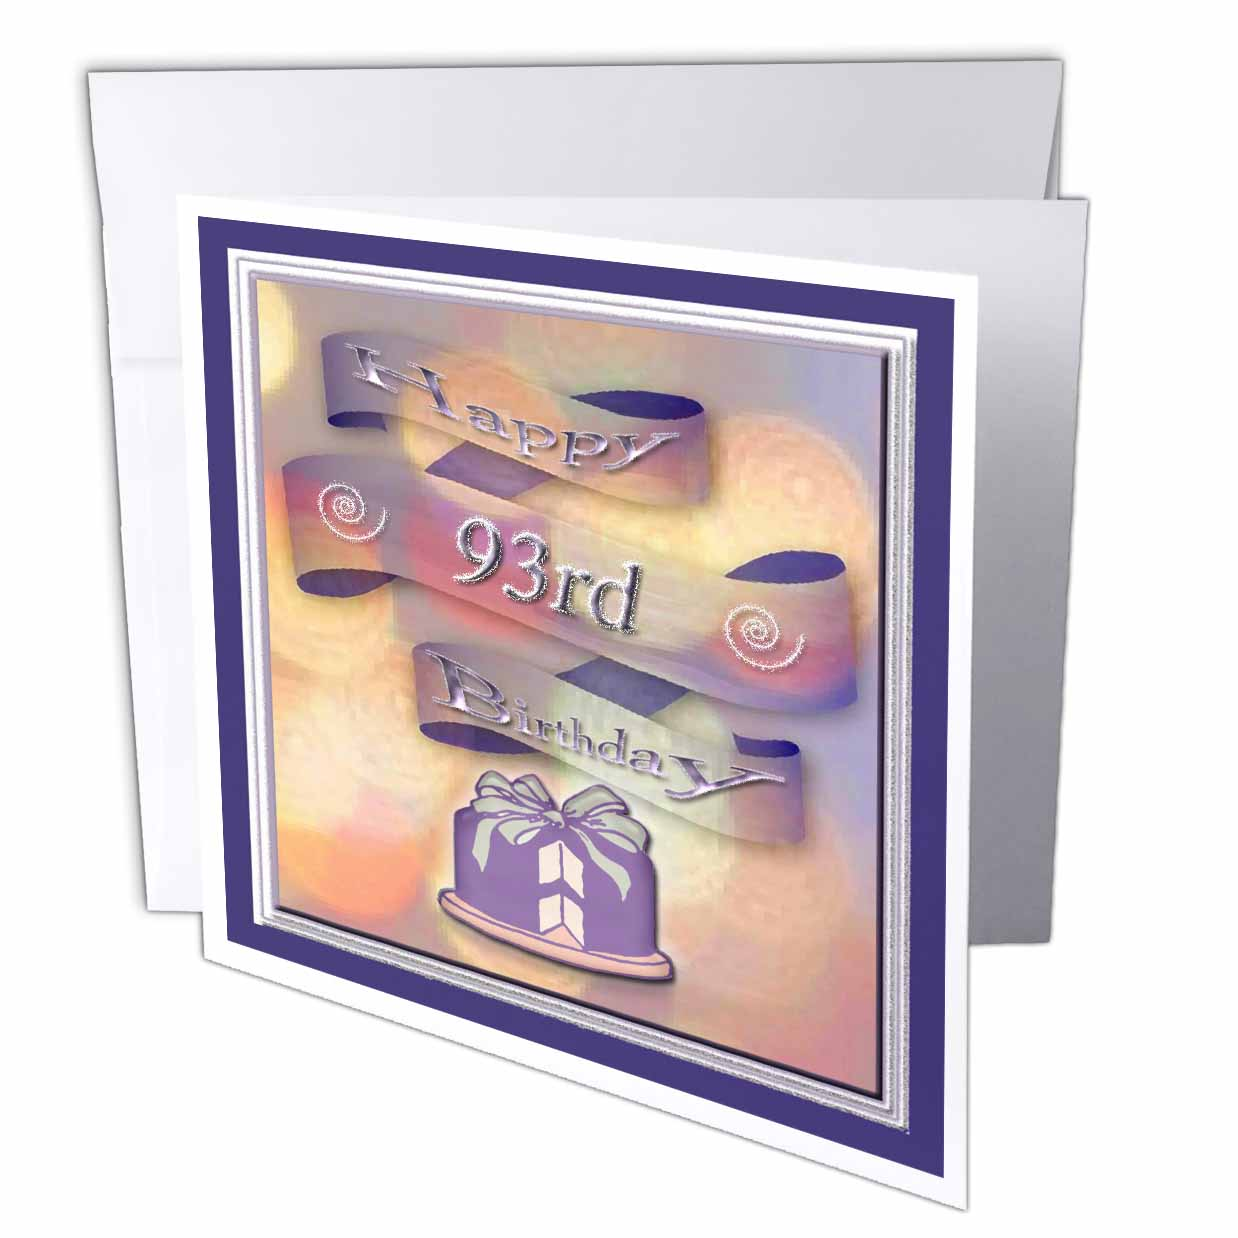 3dRose Ribbon and Cake Happy 93rd Birthday, Greeting Cards, 6 x 6 inches, set of 6